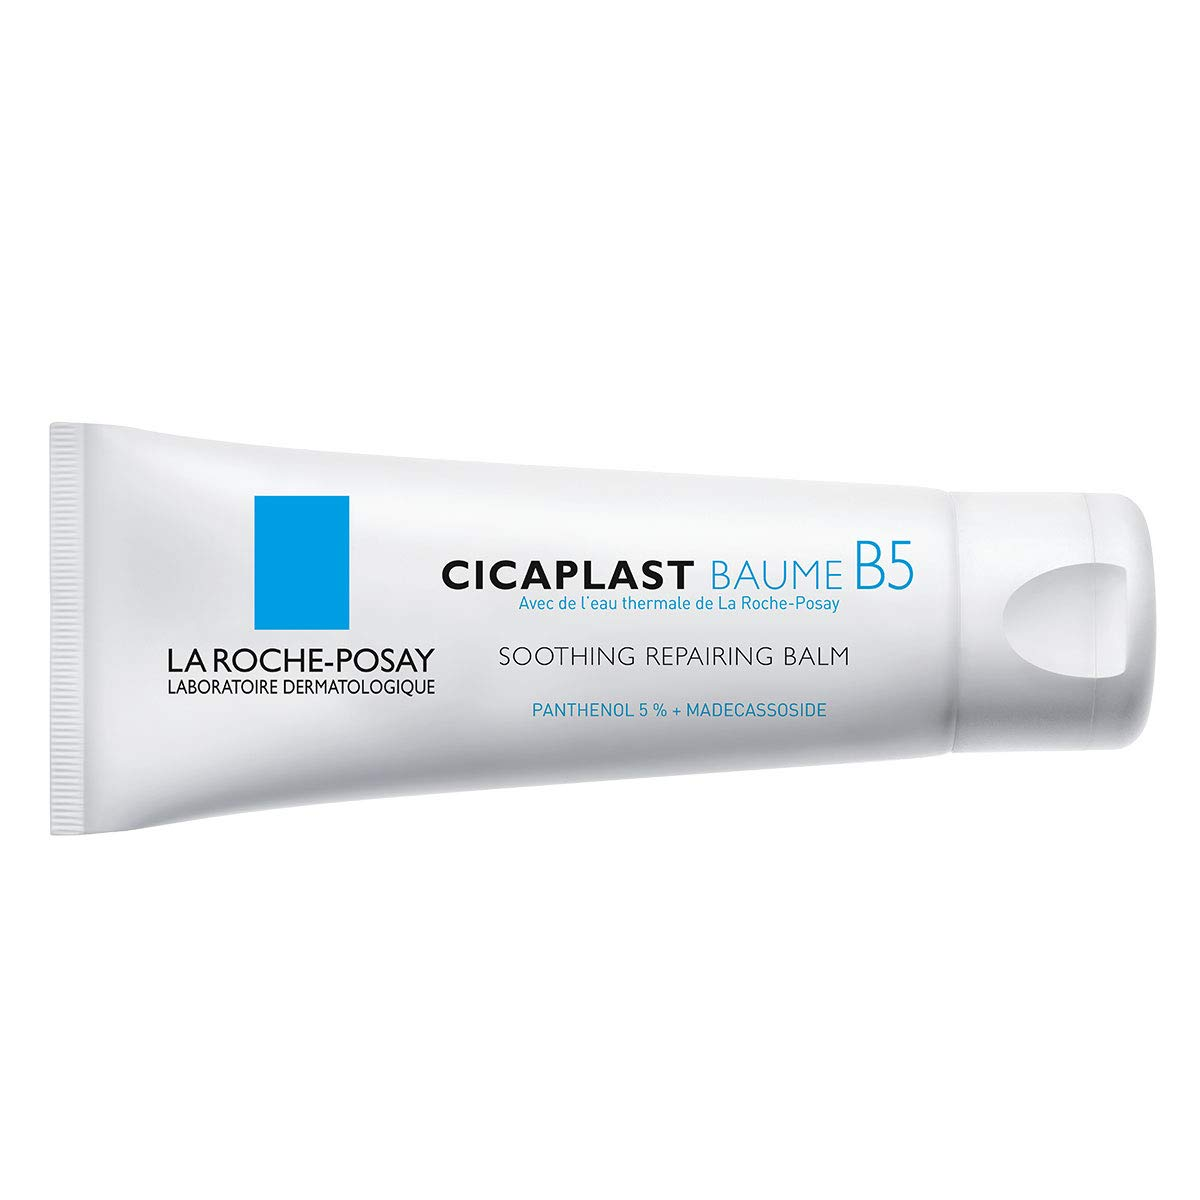 La Roche-Posay Cicaplast Balm B5, Soothing Therapeutic Multi Purpose Cream for Dry & Irritated Skin, Body and Hand Balm, Fragrance Free